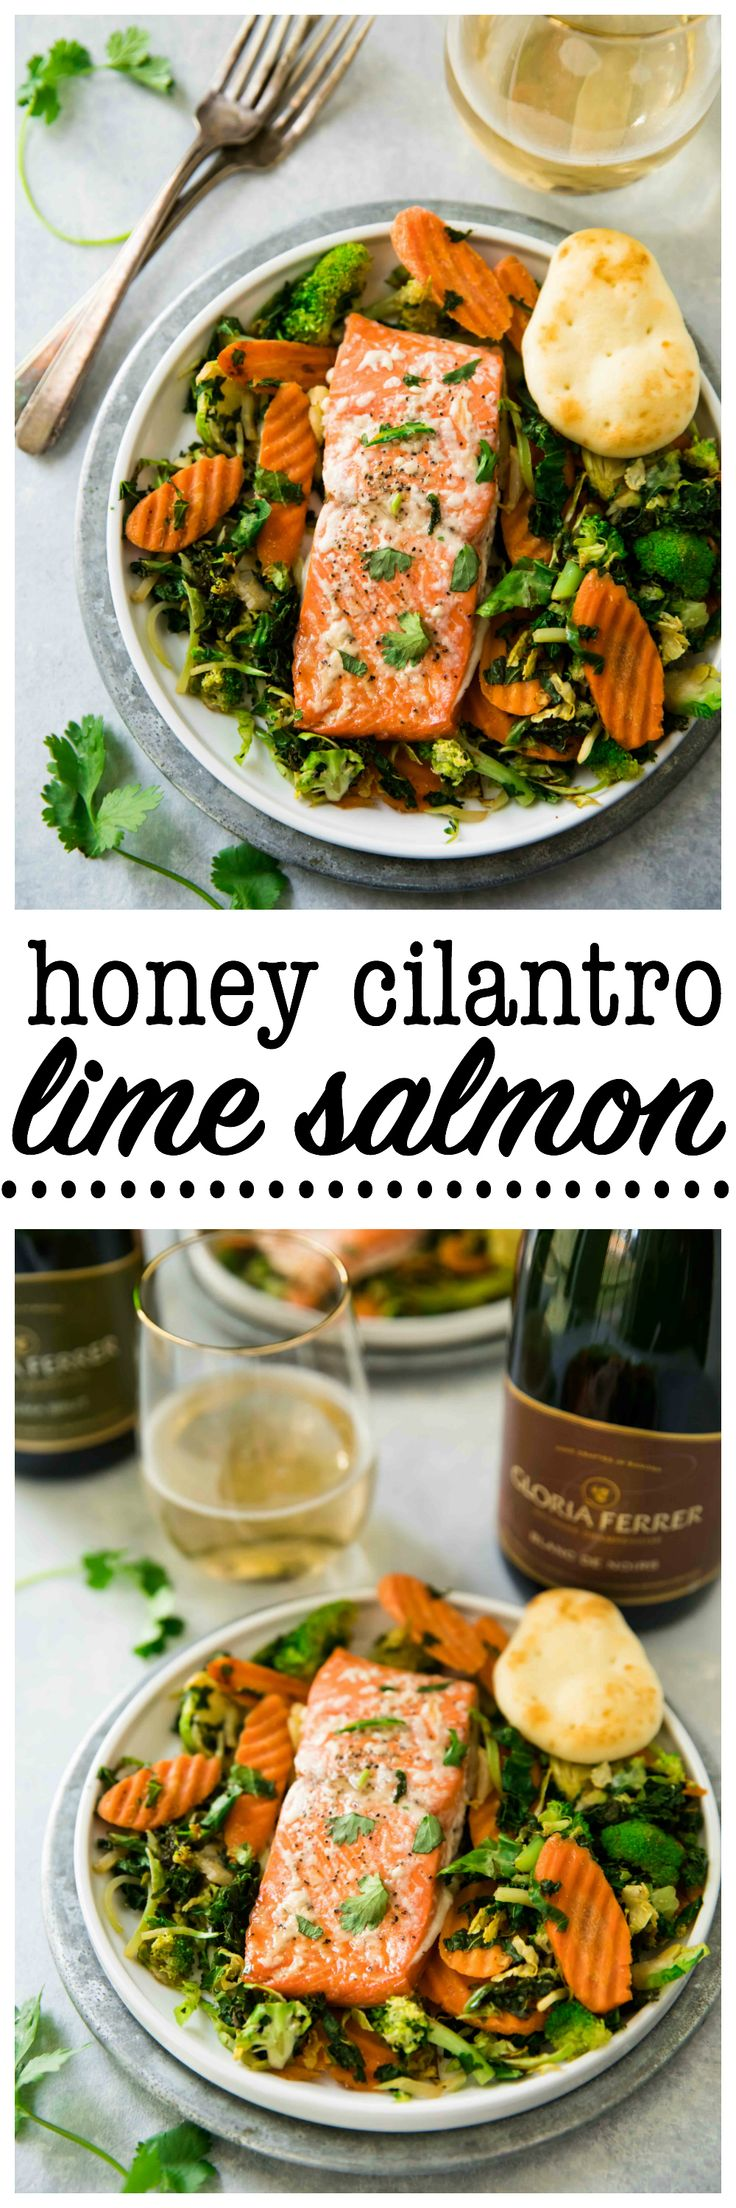 This Honey Cilantro Lime Salmon is simple, delicious and perfect for an easy family meal as well as impressive enough for a dinner party. Serve with @GloriaFerrer for a real stunner! AD